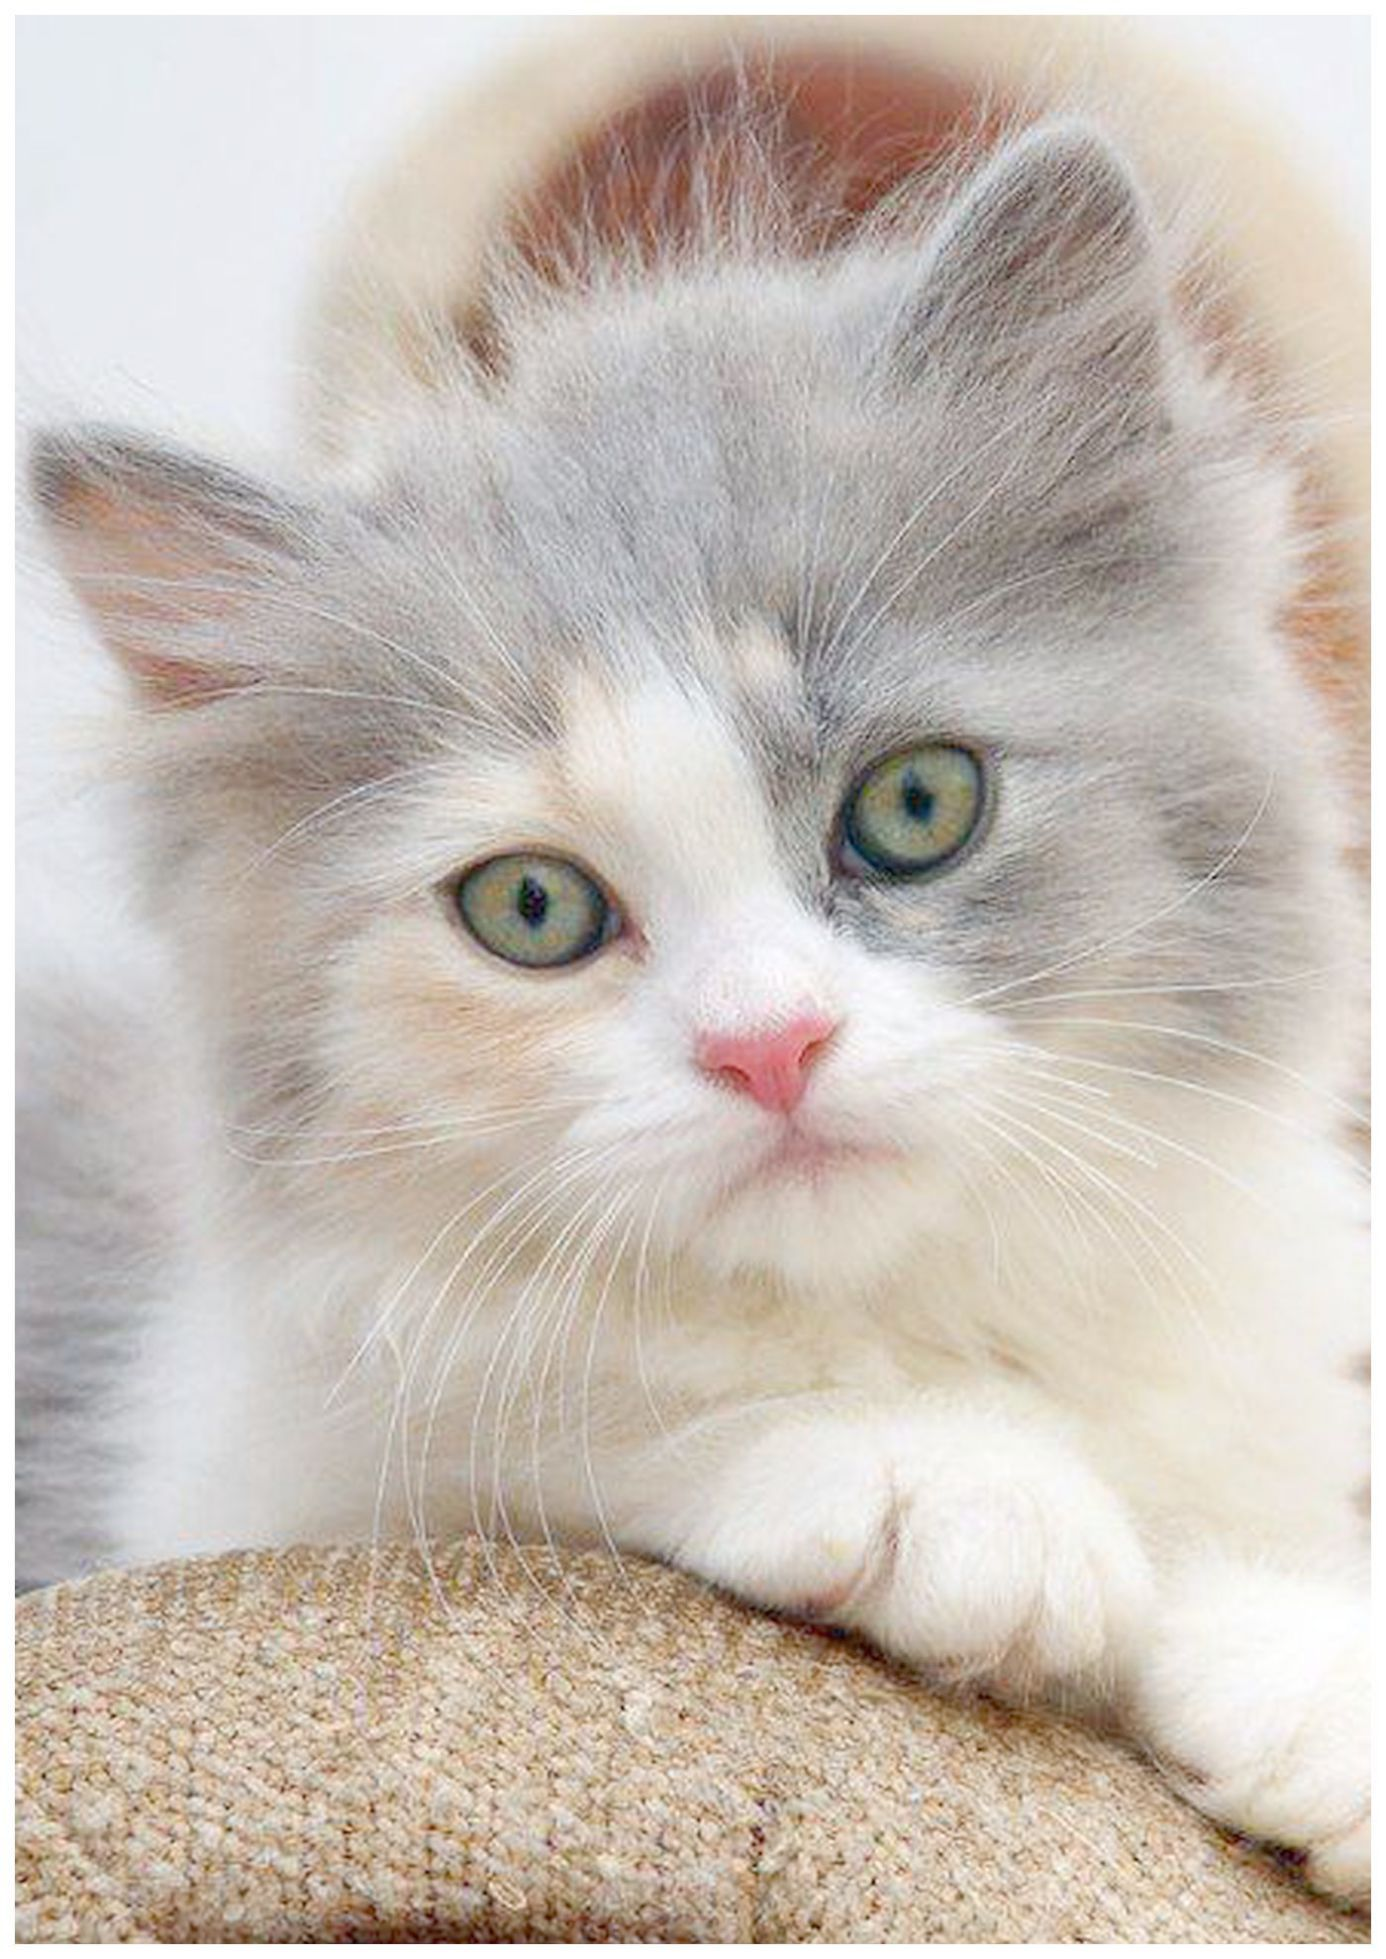 Cute Animals In Costumes Video Cats And Kittens For Sale Hampshire At Cute Jungle Animals Coloring Pages Our Kitten Pictures Kittens Cutest Cats And Kittens